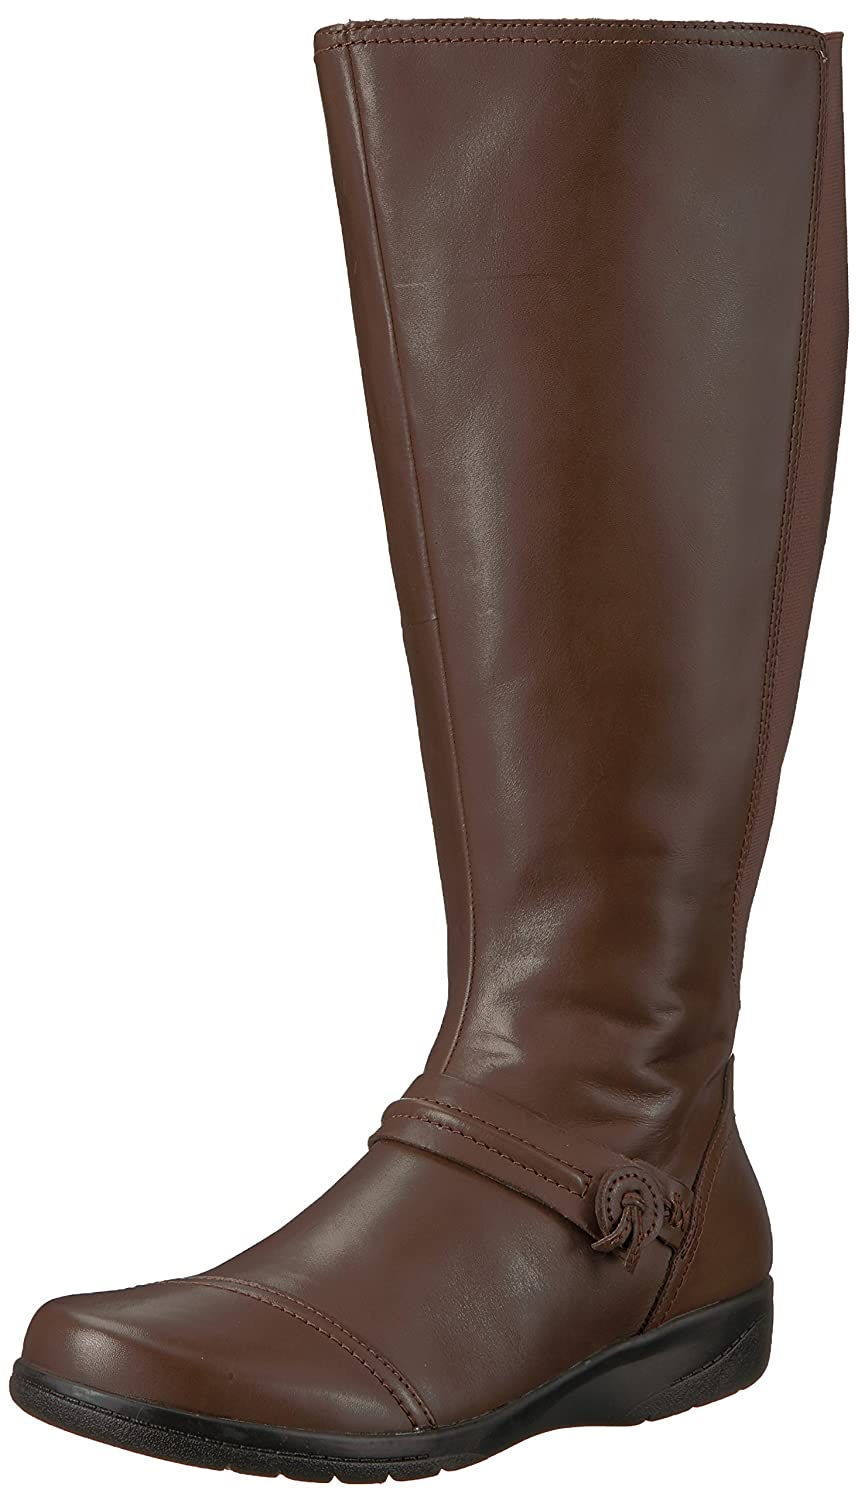 CLARKS Women's Cheyn Whisk Wide Calf Knee High Boot B01N4DCSNH 9 B(M) US|Dark Brown Leather